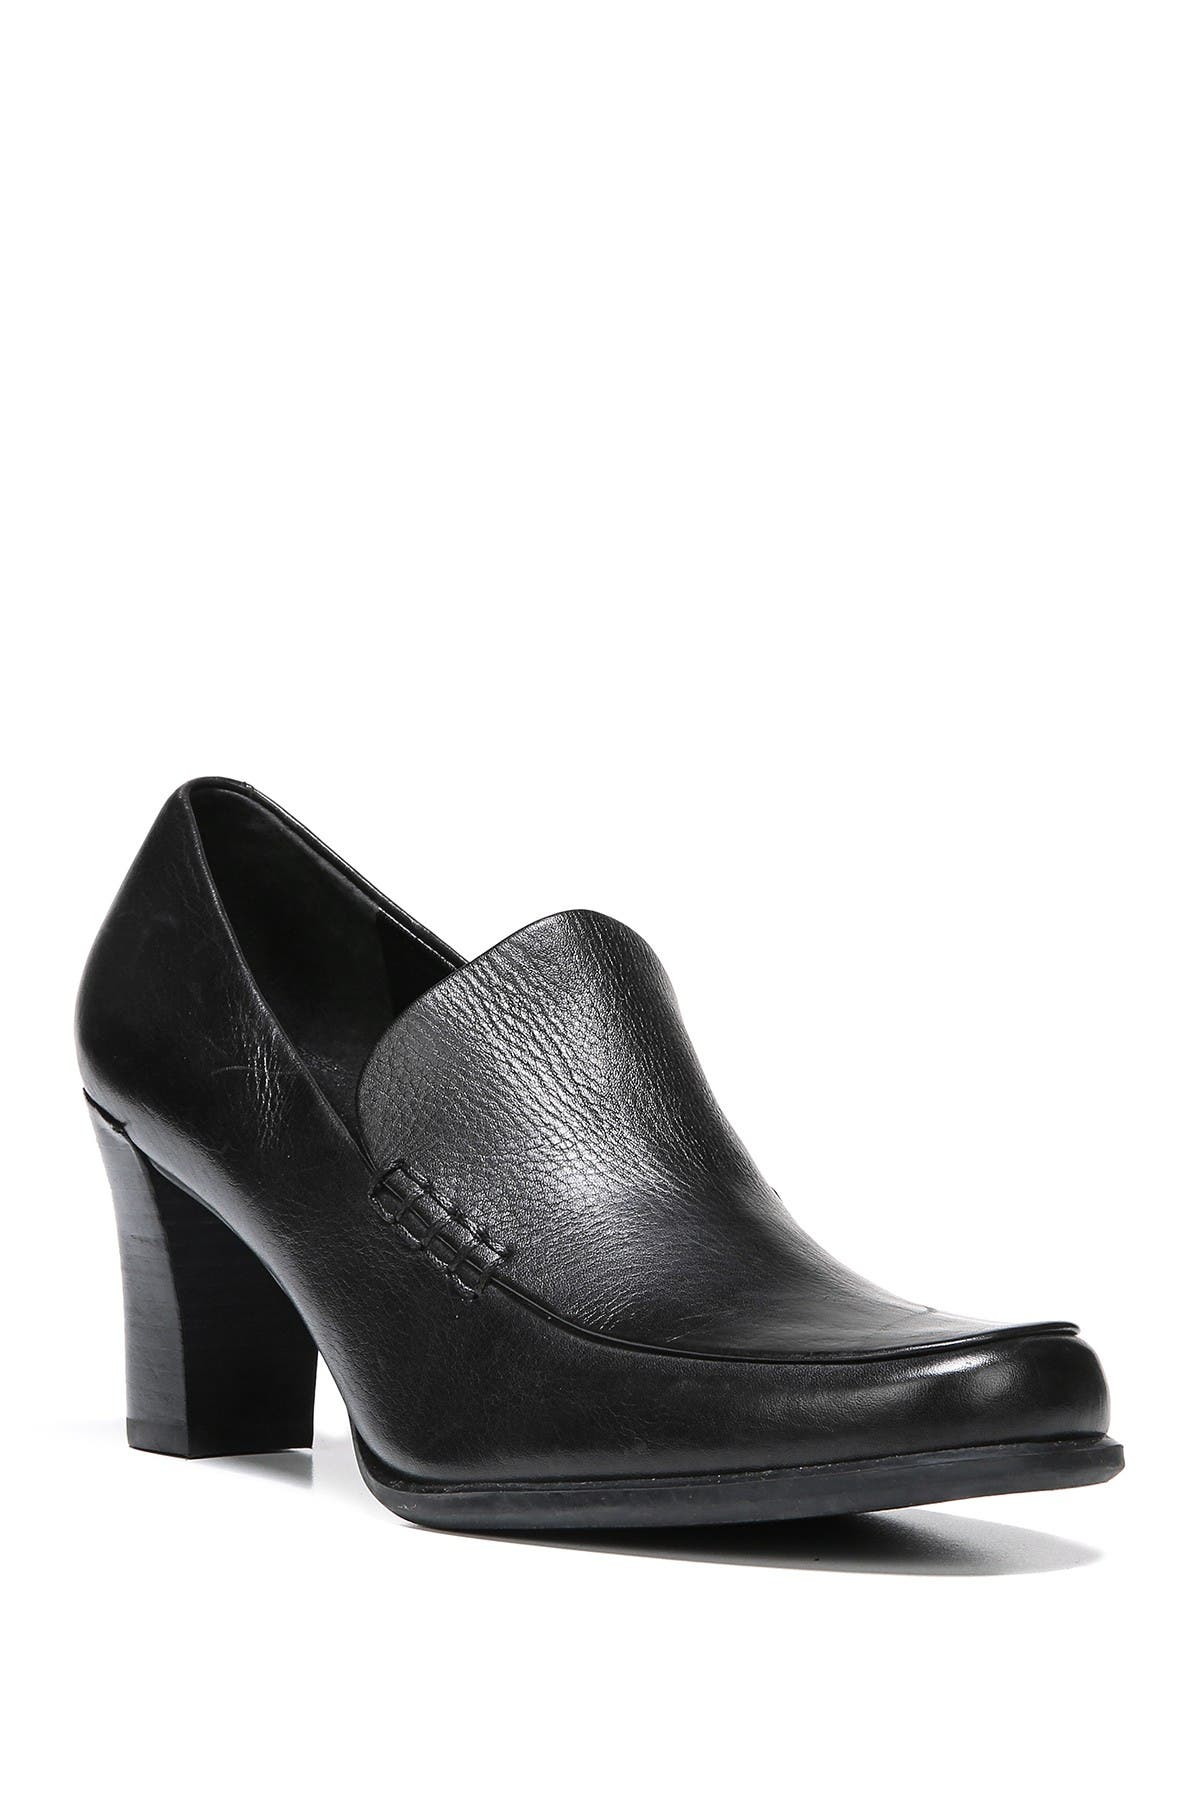 Image of Franco Sarto Nolan Block Heel Loafer - Multiple Widths Available